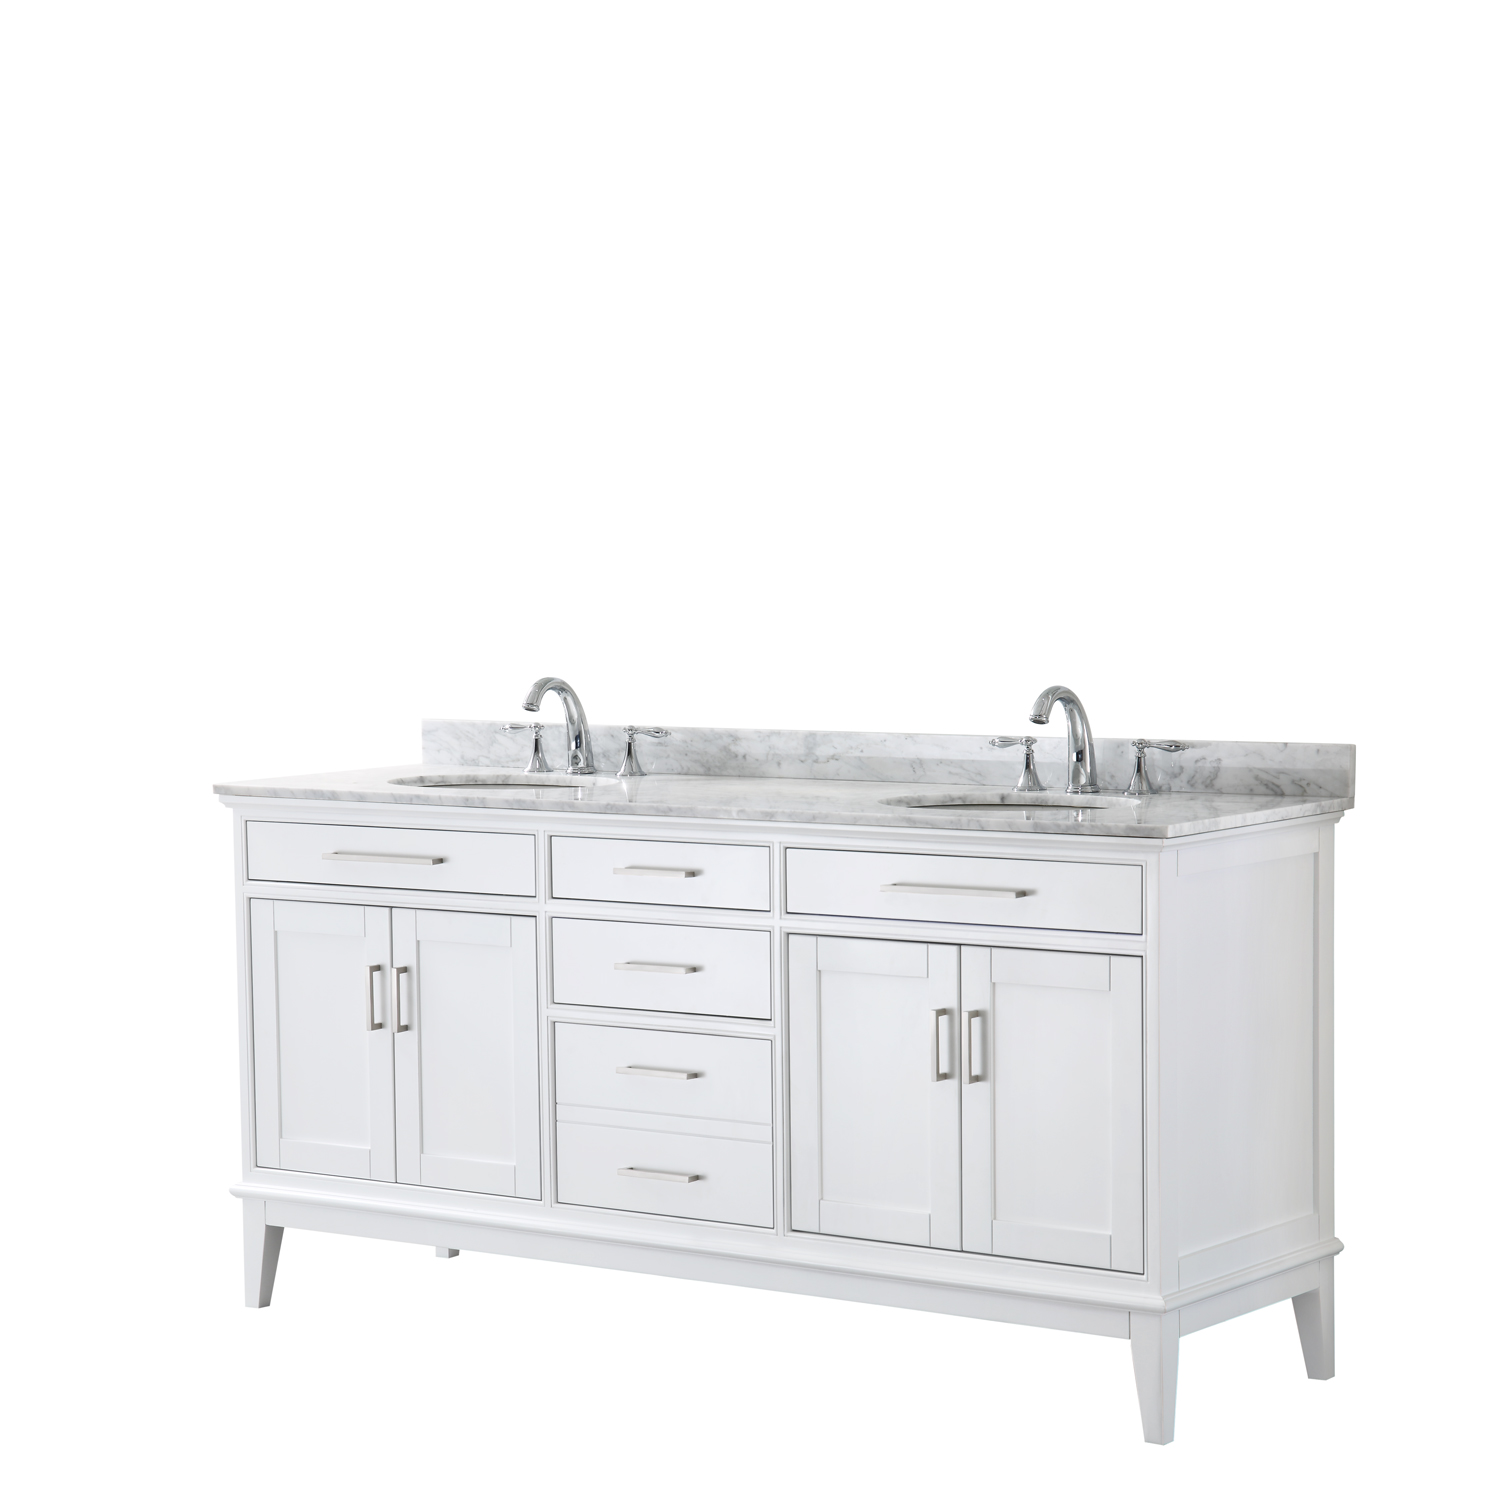 """Contemporary 72"""" Double Bathroom Vanity in White, White Carrara Marble Countertop with Undermount Sinks, and Mirror Options"""